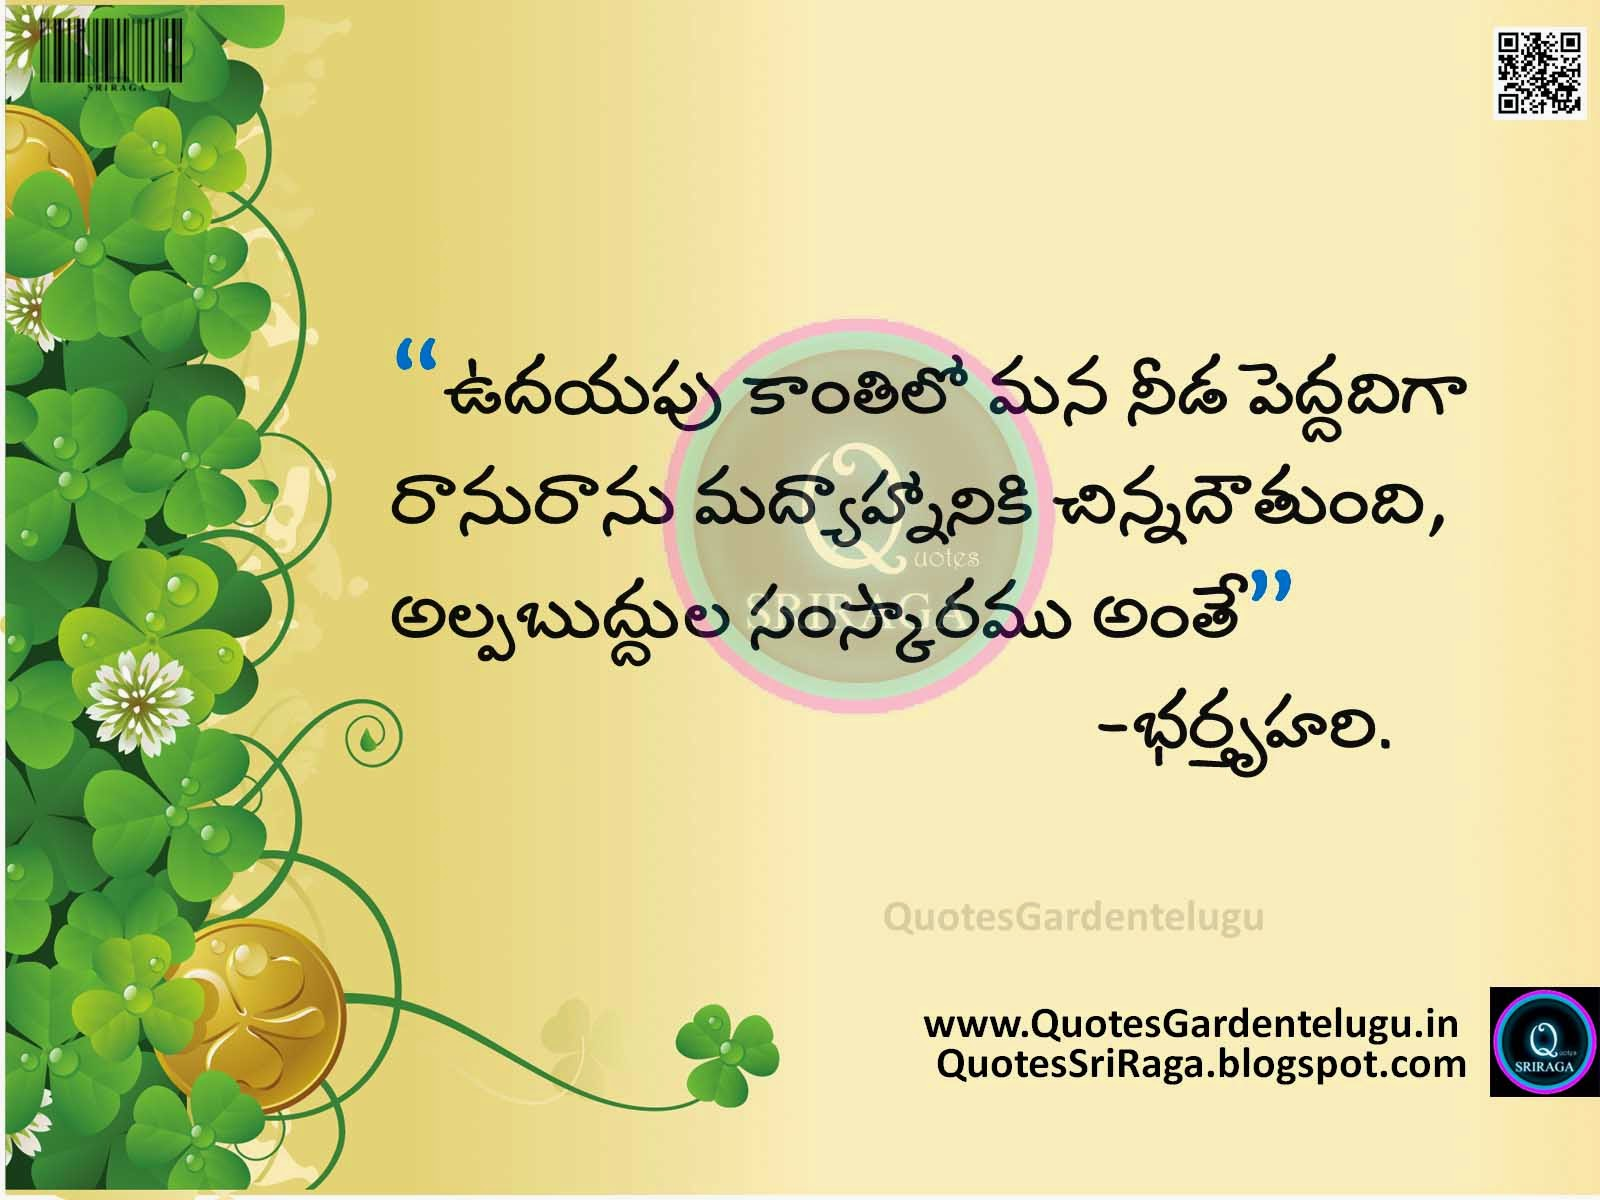 Telugu Good Reads Best Telugu Inspirational Quotes with HDwallpapers Motivational Quotes images